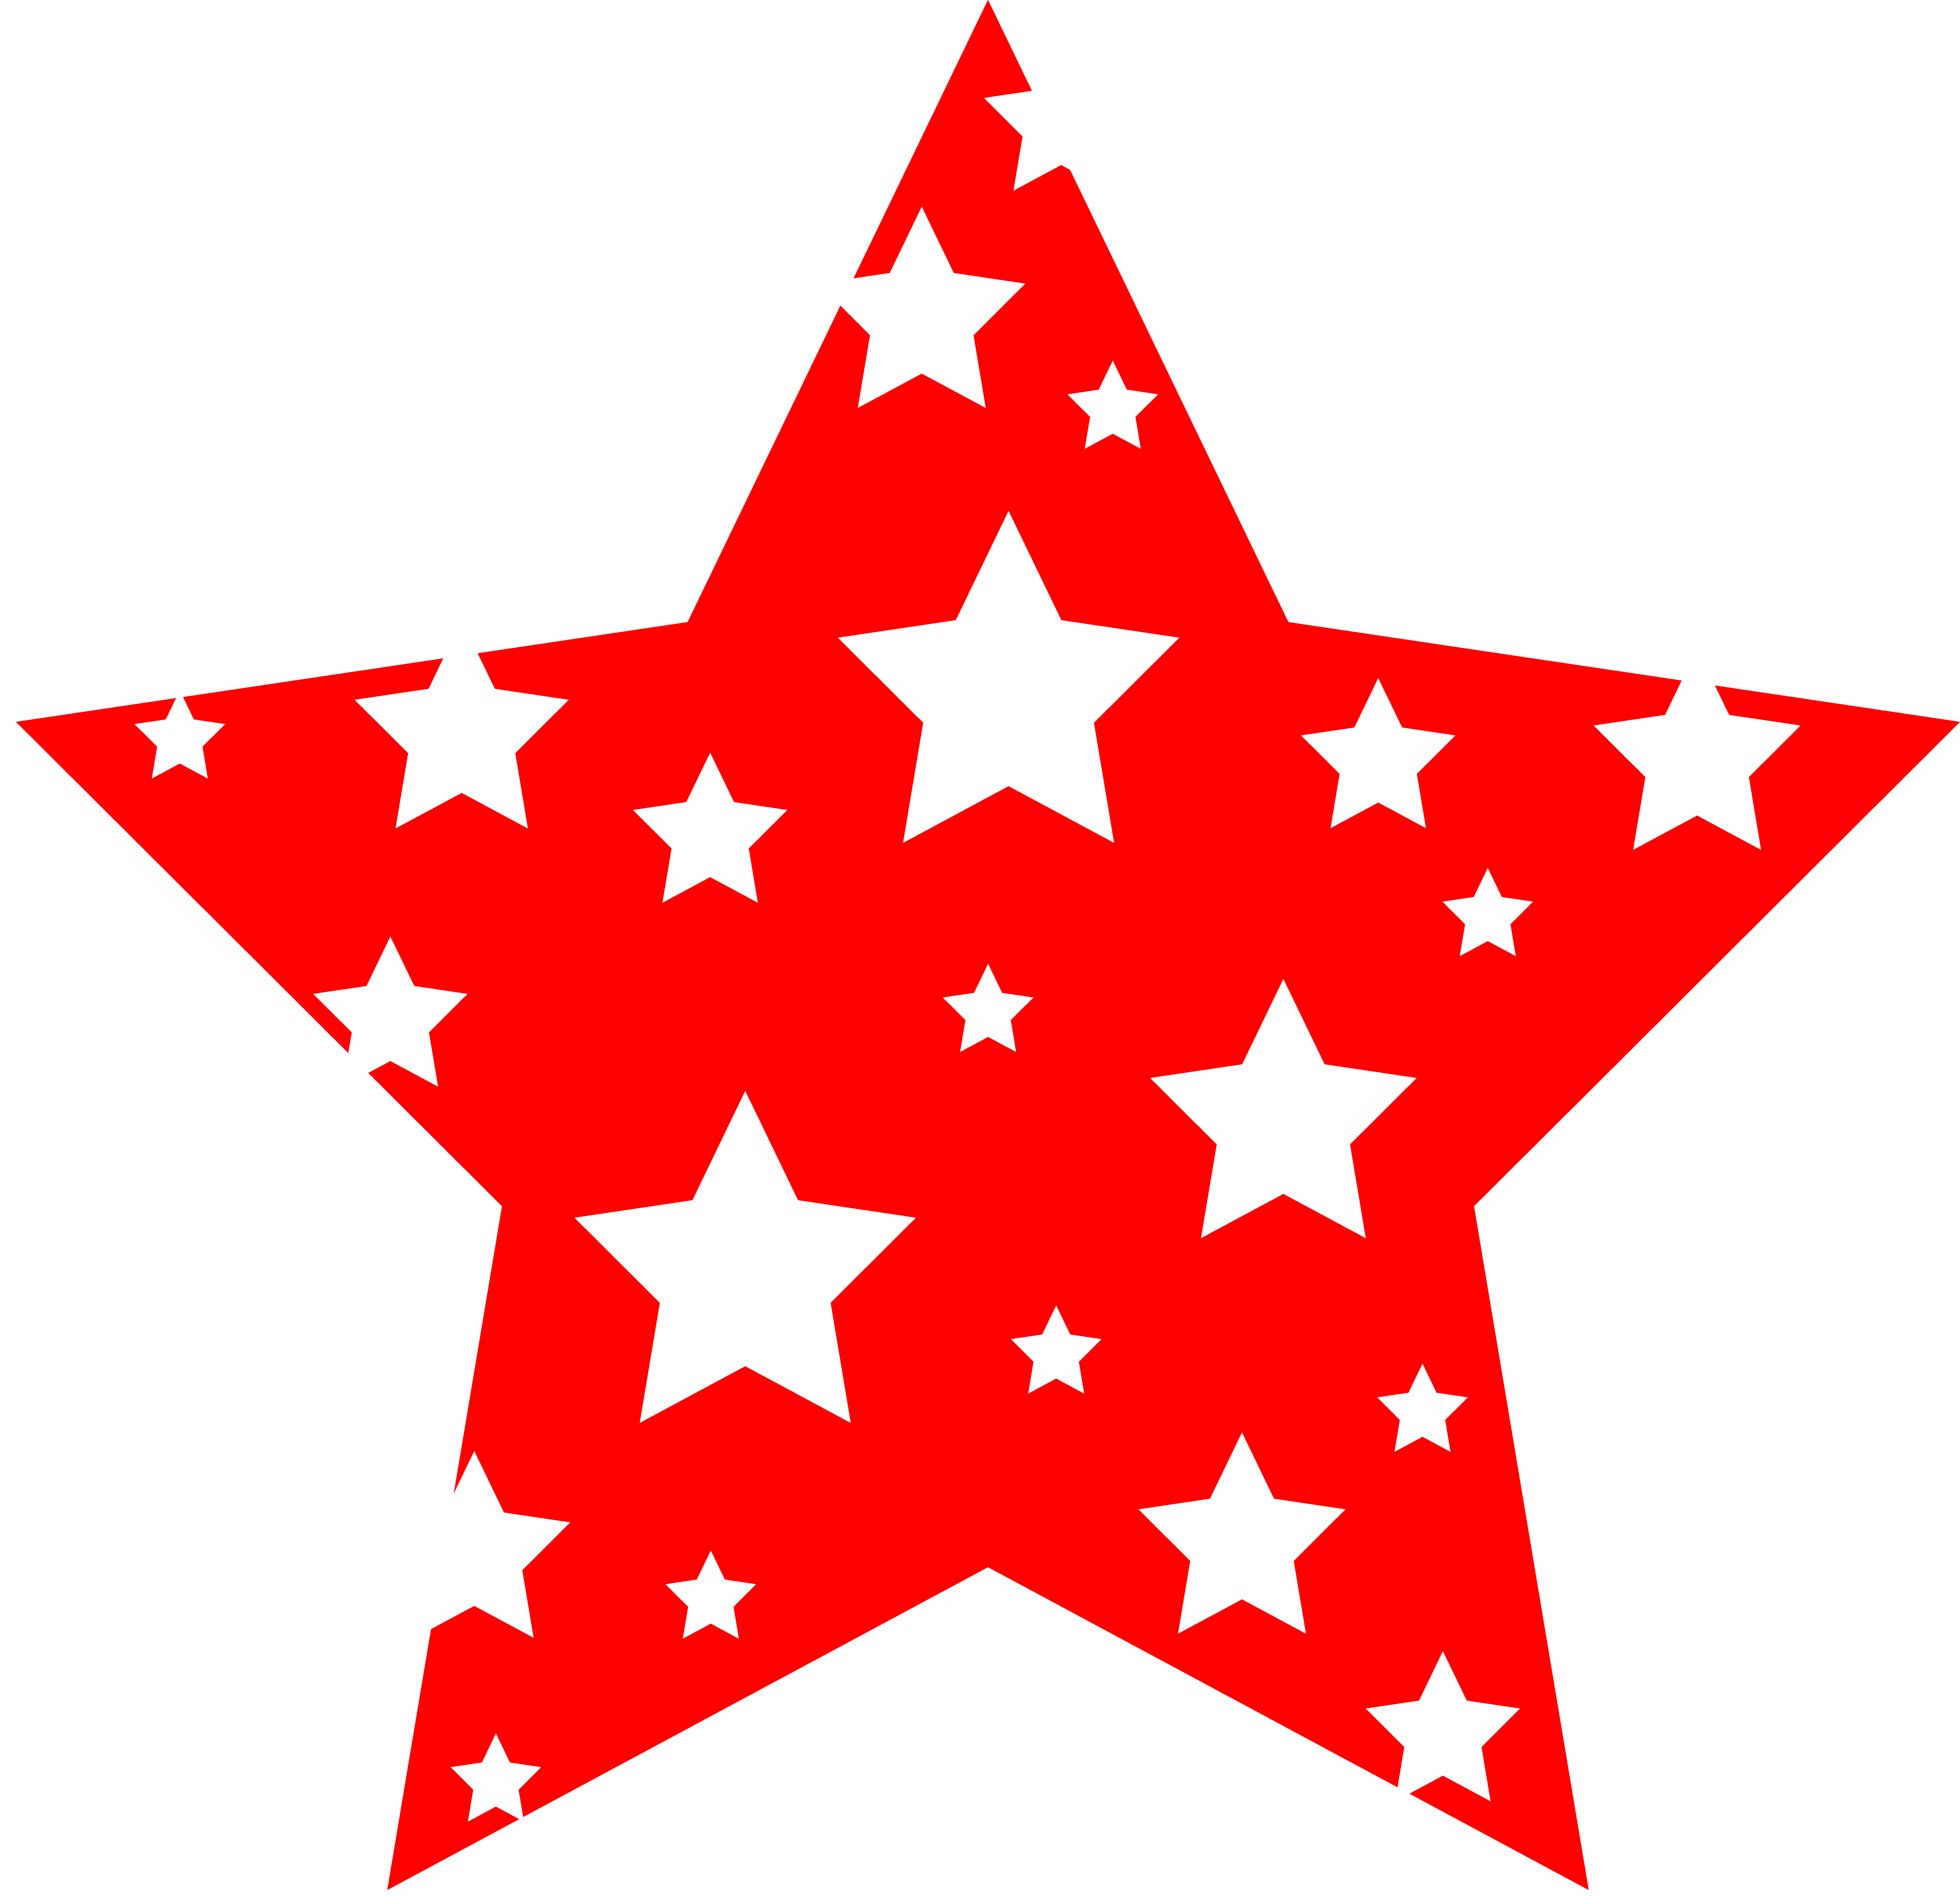 Star clipart images gallery. Red stars png png